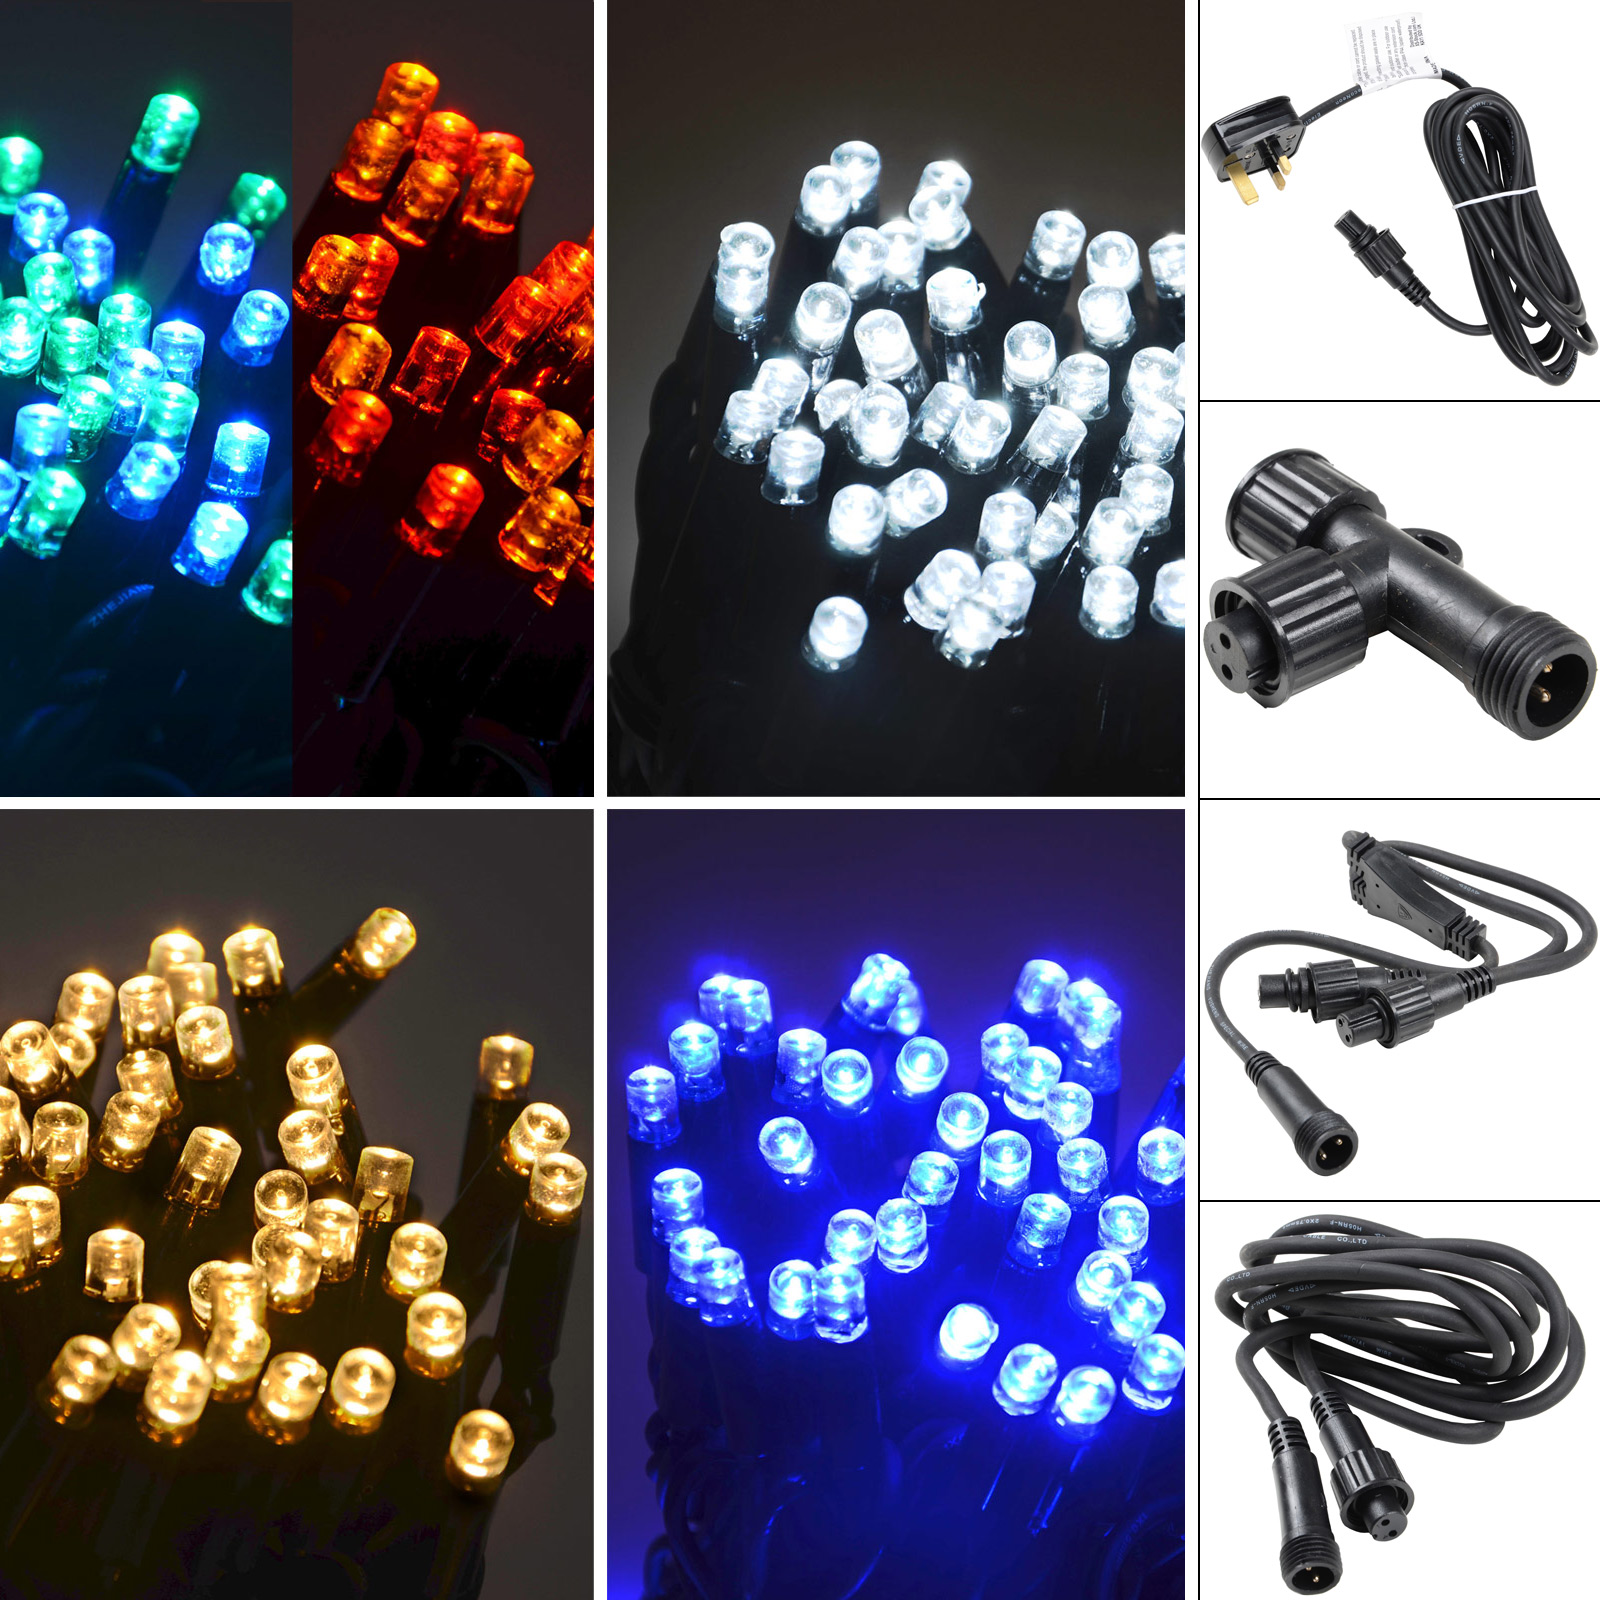 string lights christmas power cord extension cables outdoors ebay. Black Bedroom Furniture Sets. Home Design Ideas